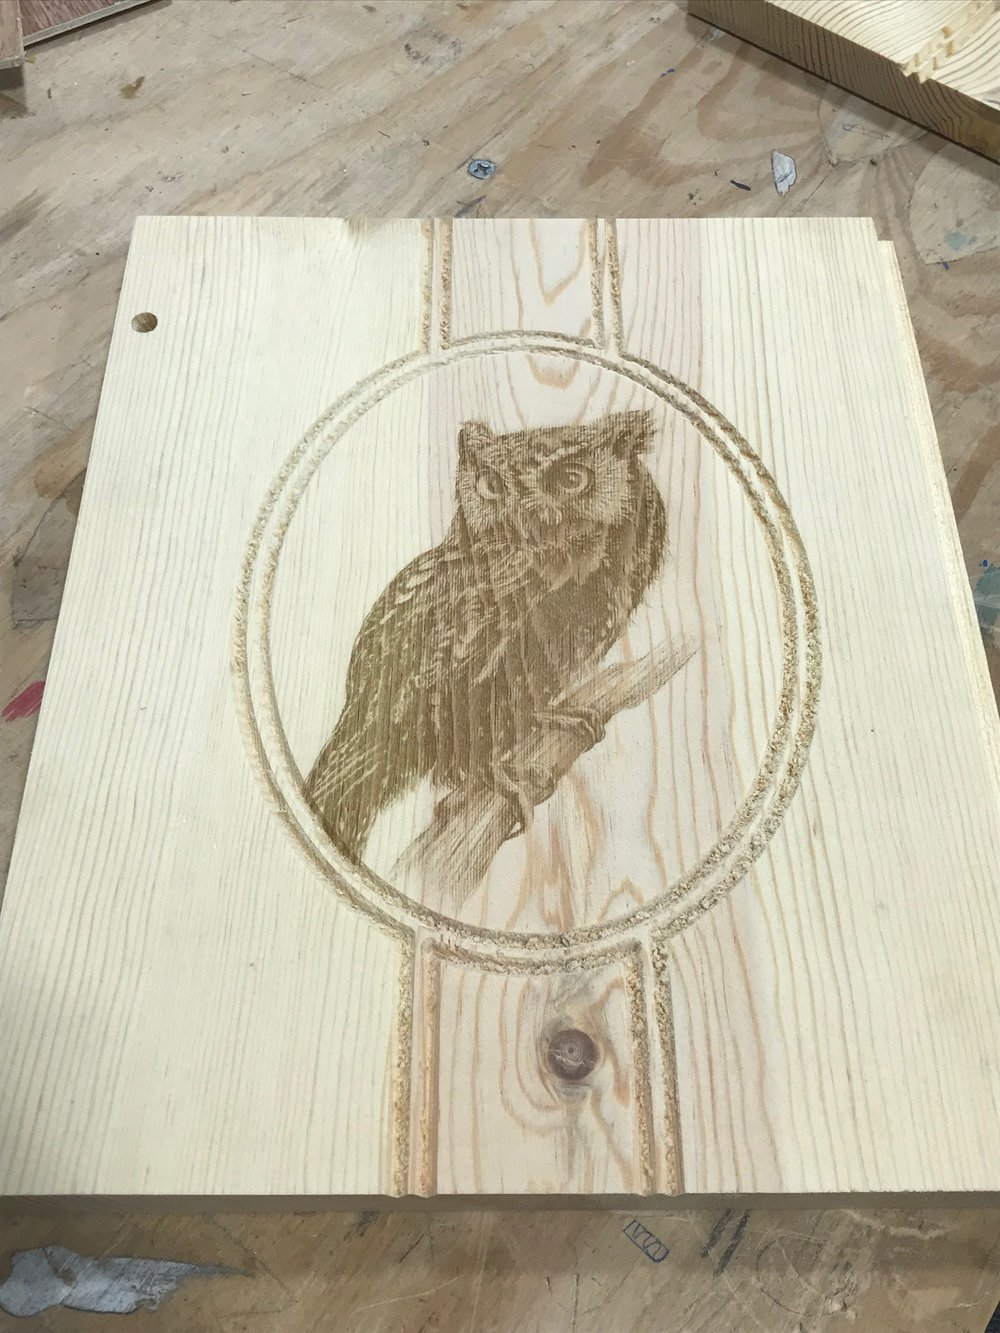 Students laser engraved images of the owl on the side of the birdhouse to add a uniqueness to the nesting box.